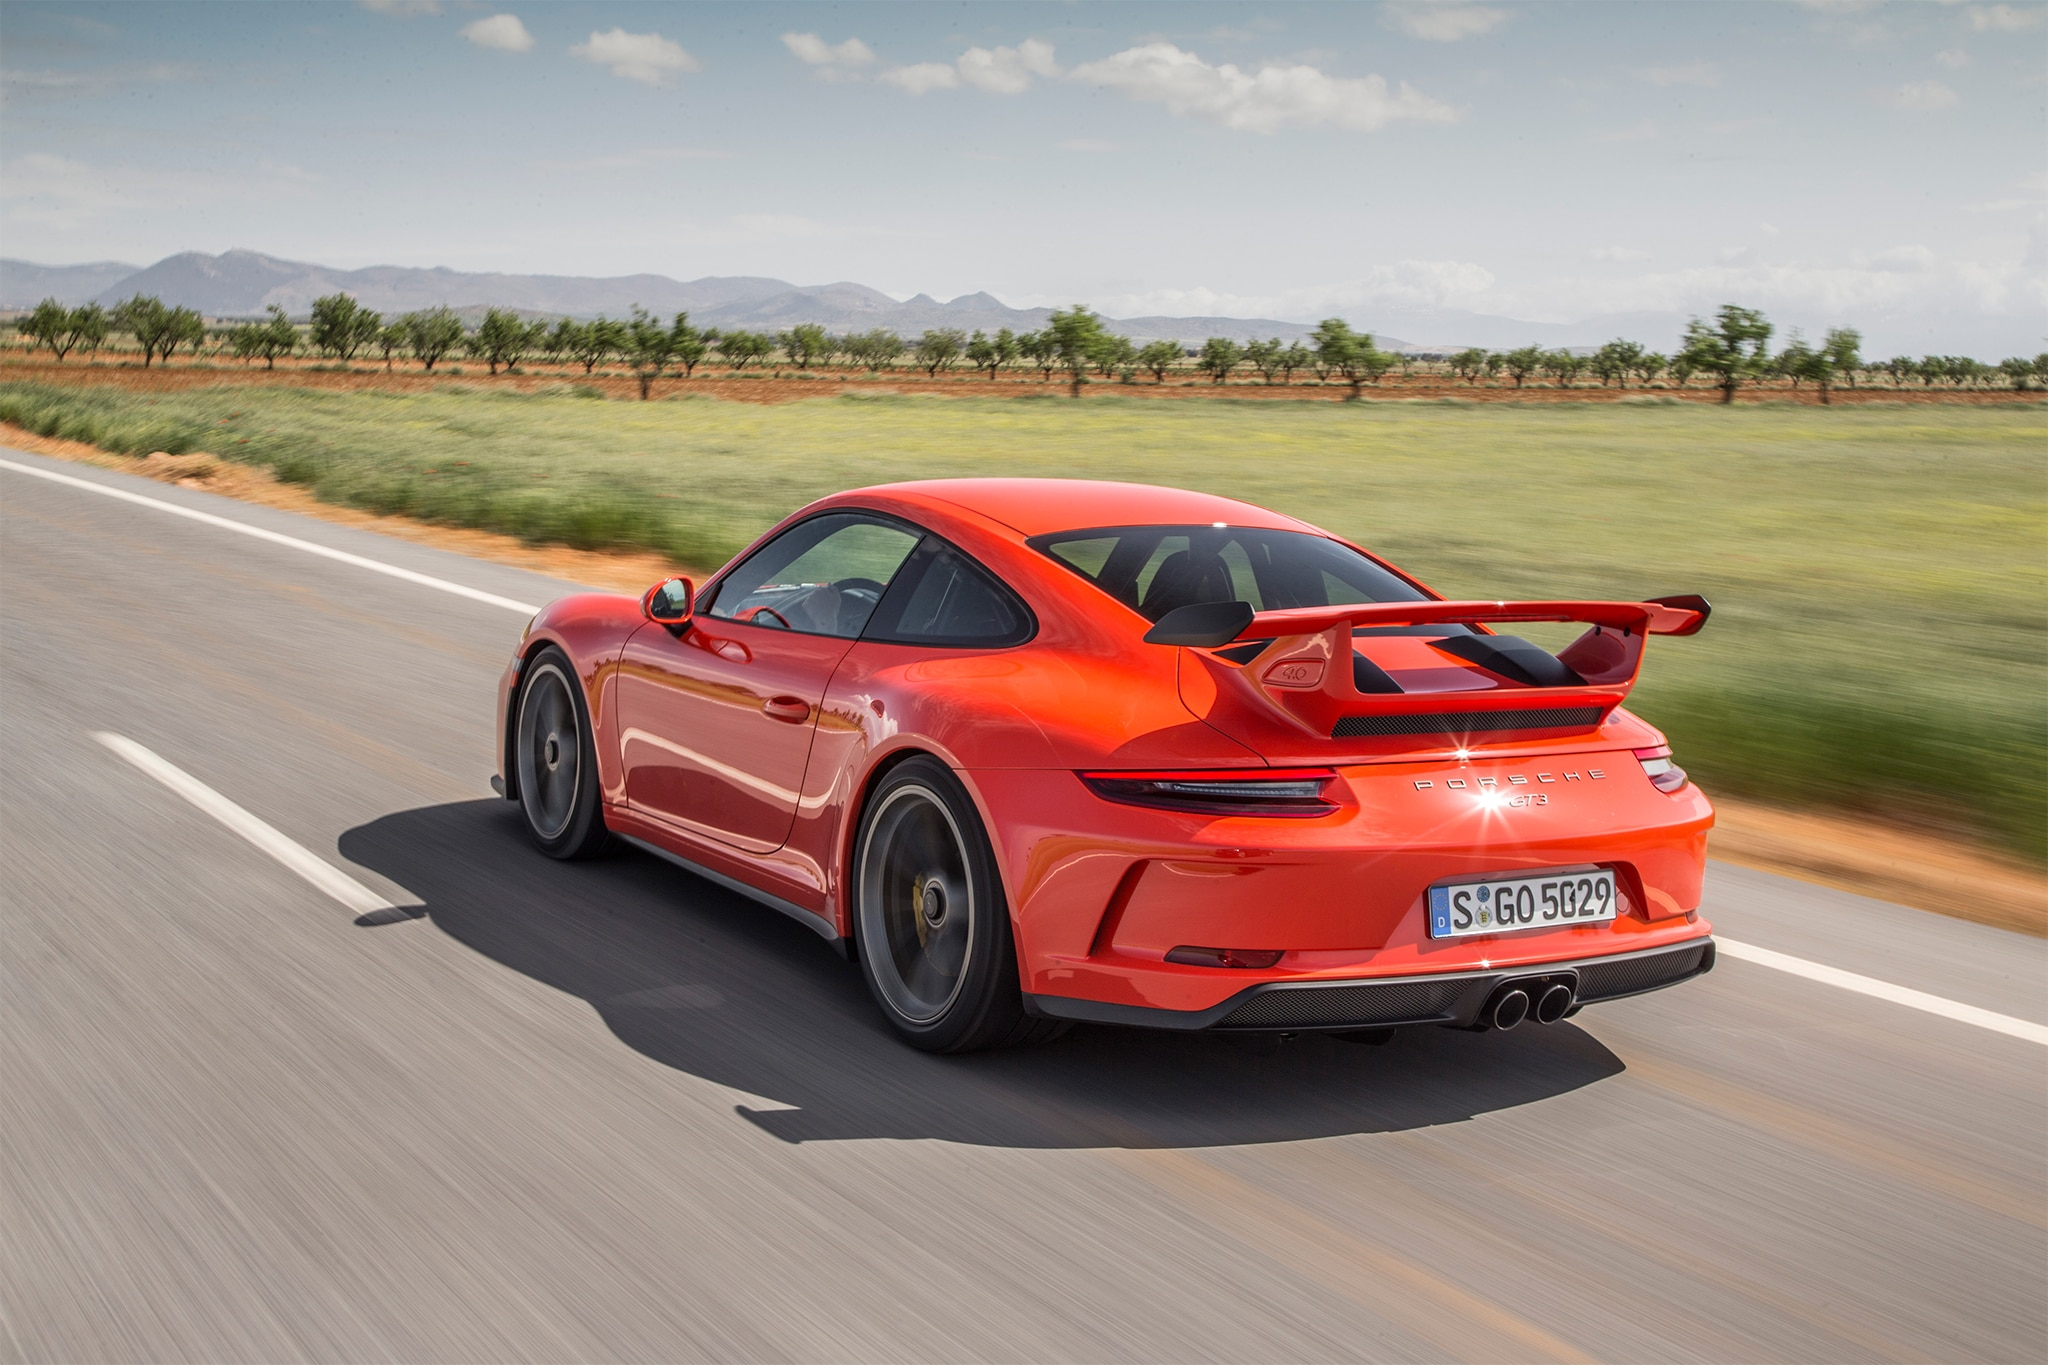 2018 Porsche 911 GT3 Rear Three Quarter In Motion 08